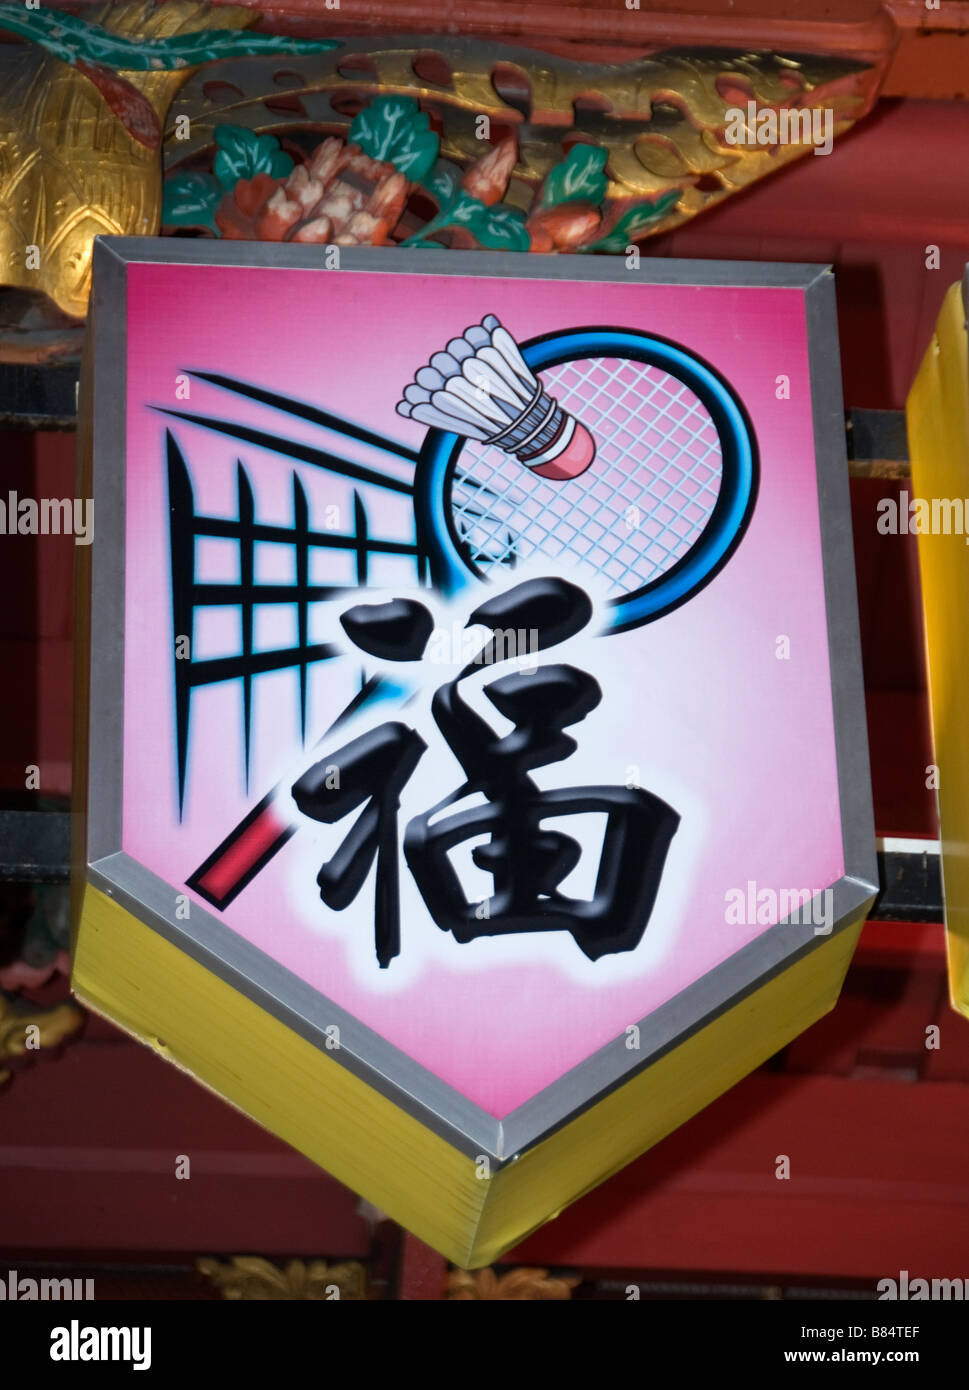 Malacca Malaysia Chinatown China Chinese beacon light neon sport play a tennis play badminton game - Stock Image